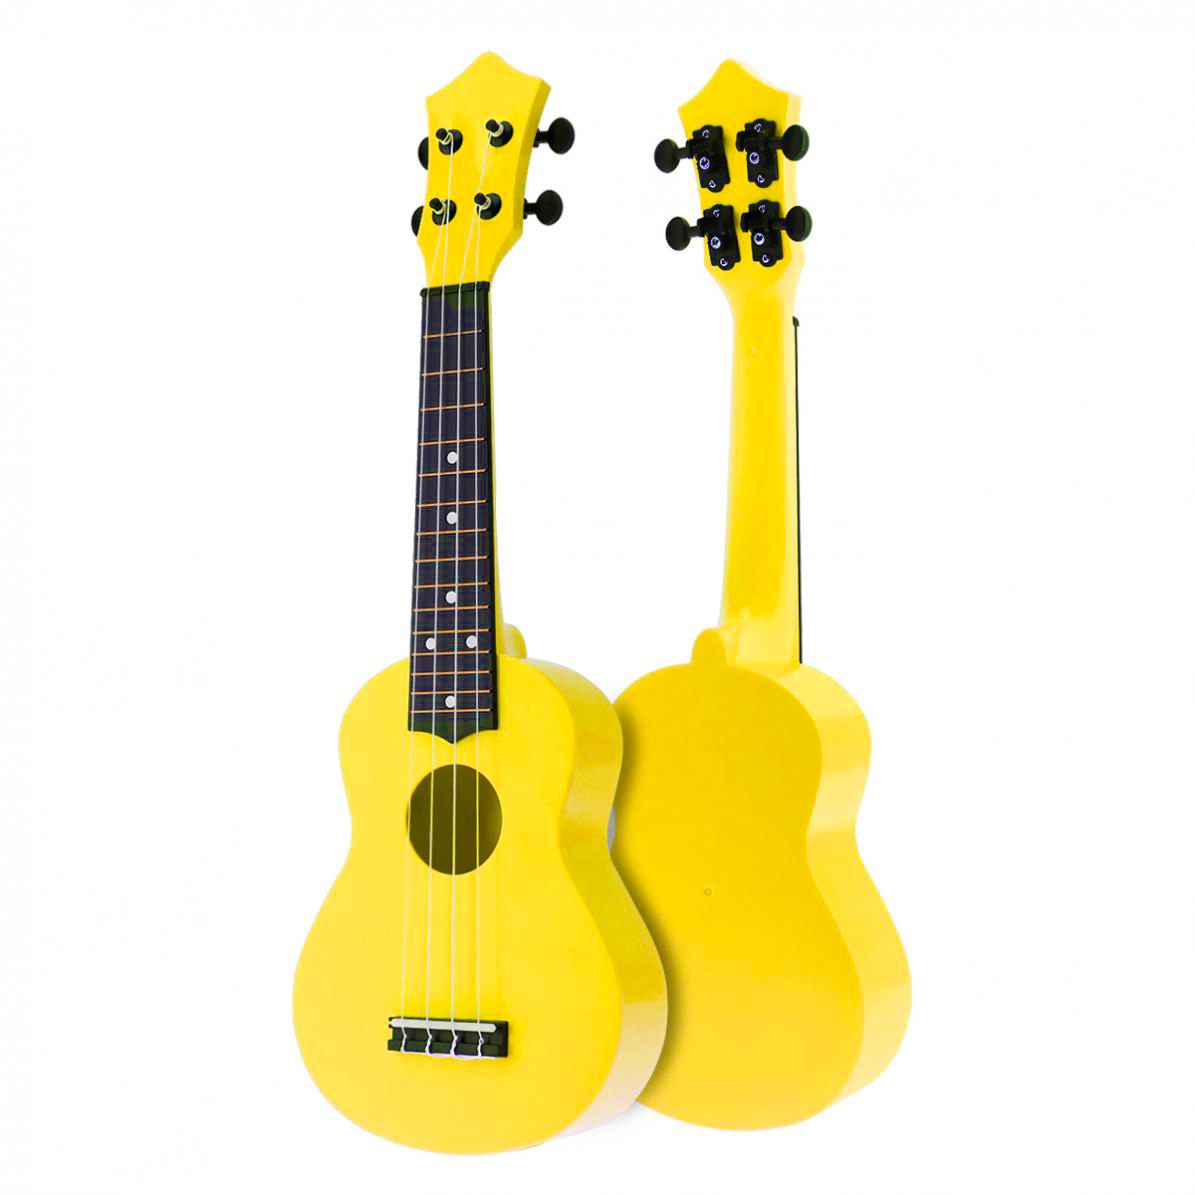 FSTE-21 Inch Acoustic Ukulele Uke 4 Strings Hawaii Guitar Guitar Instrument For Kids And Music Beginner